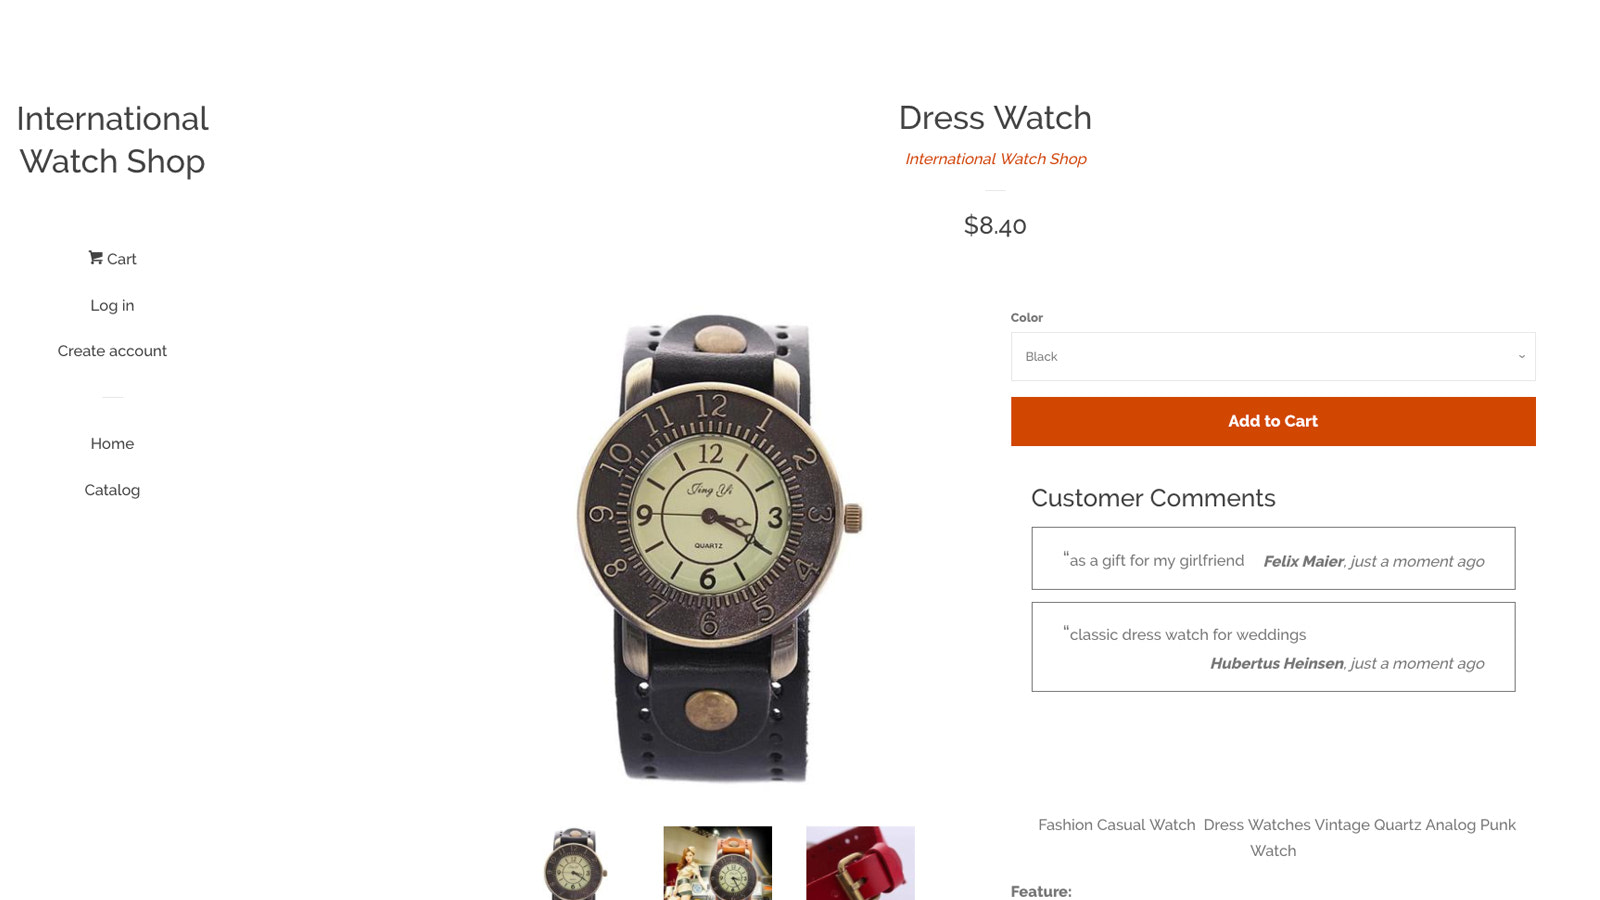 Show checkout comments on your product pages to convert visitors